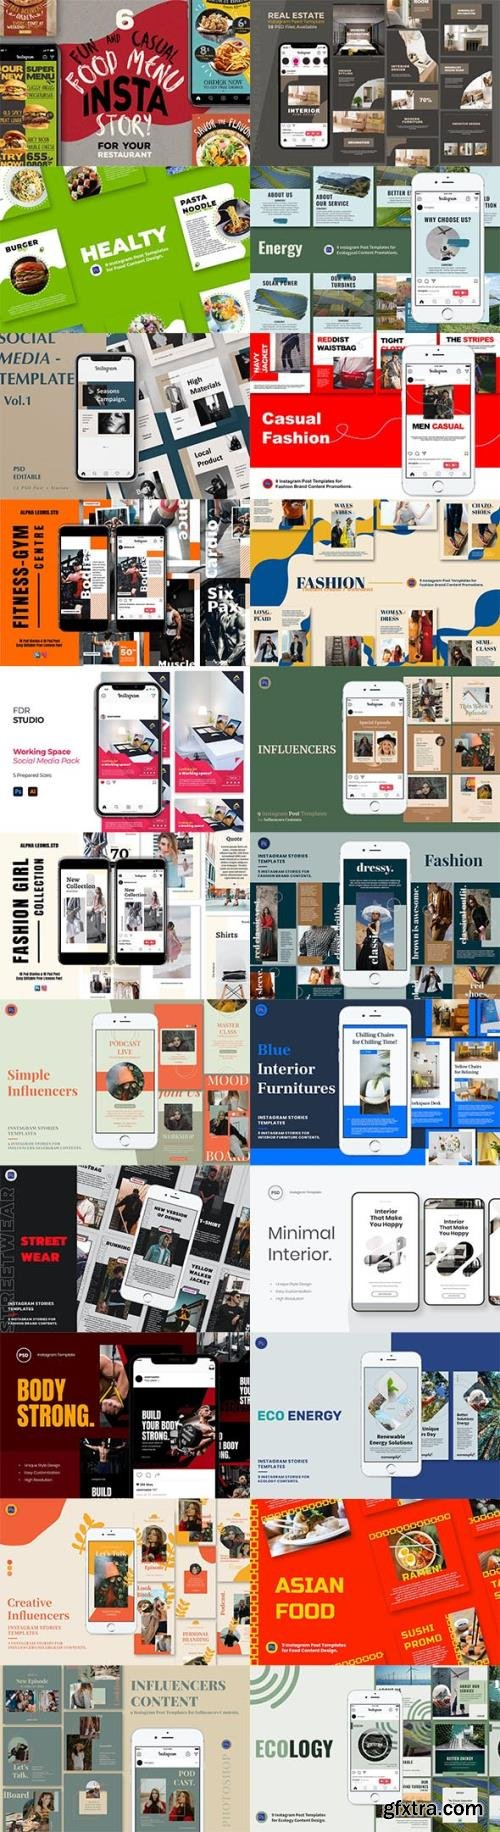 Instagram Posts and Stories Templates Pack